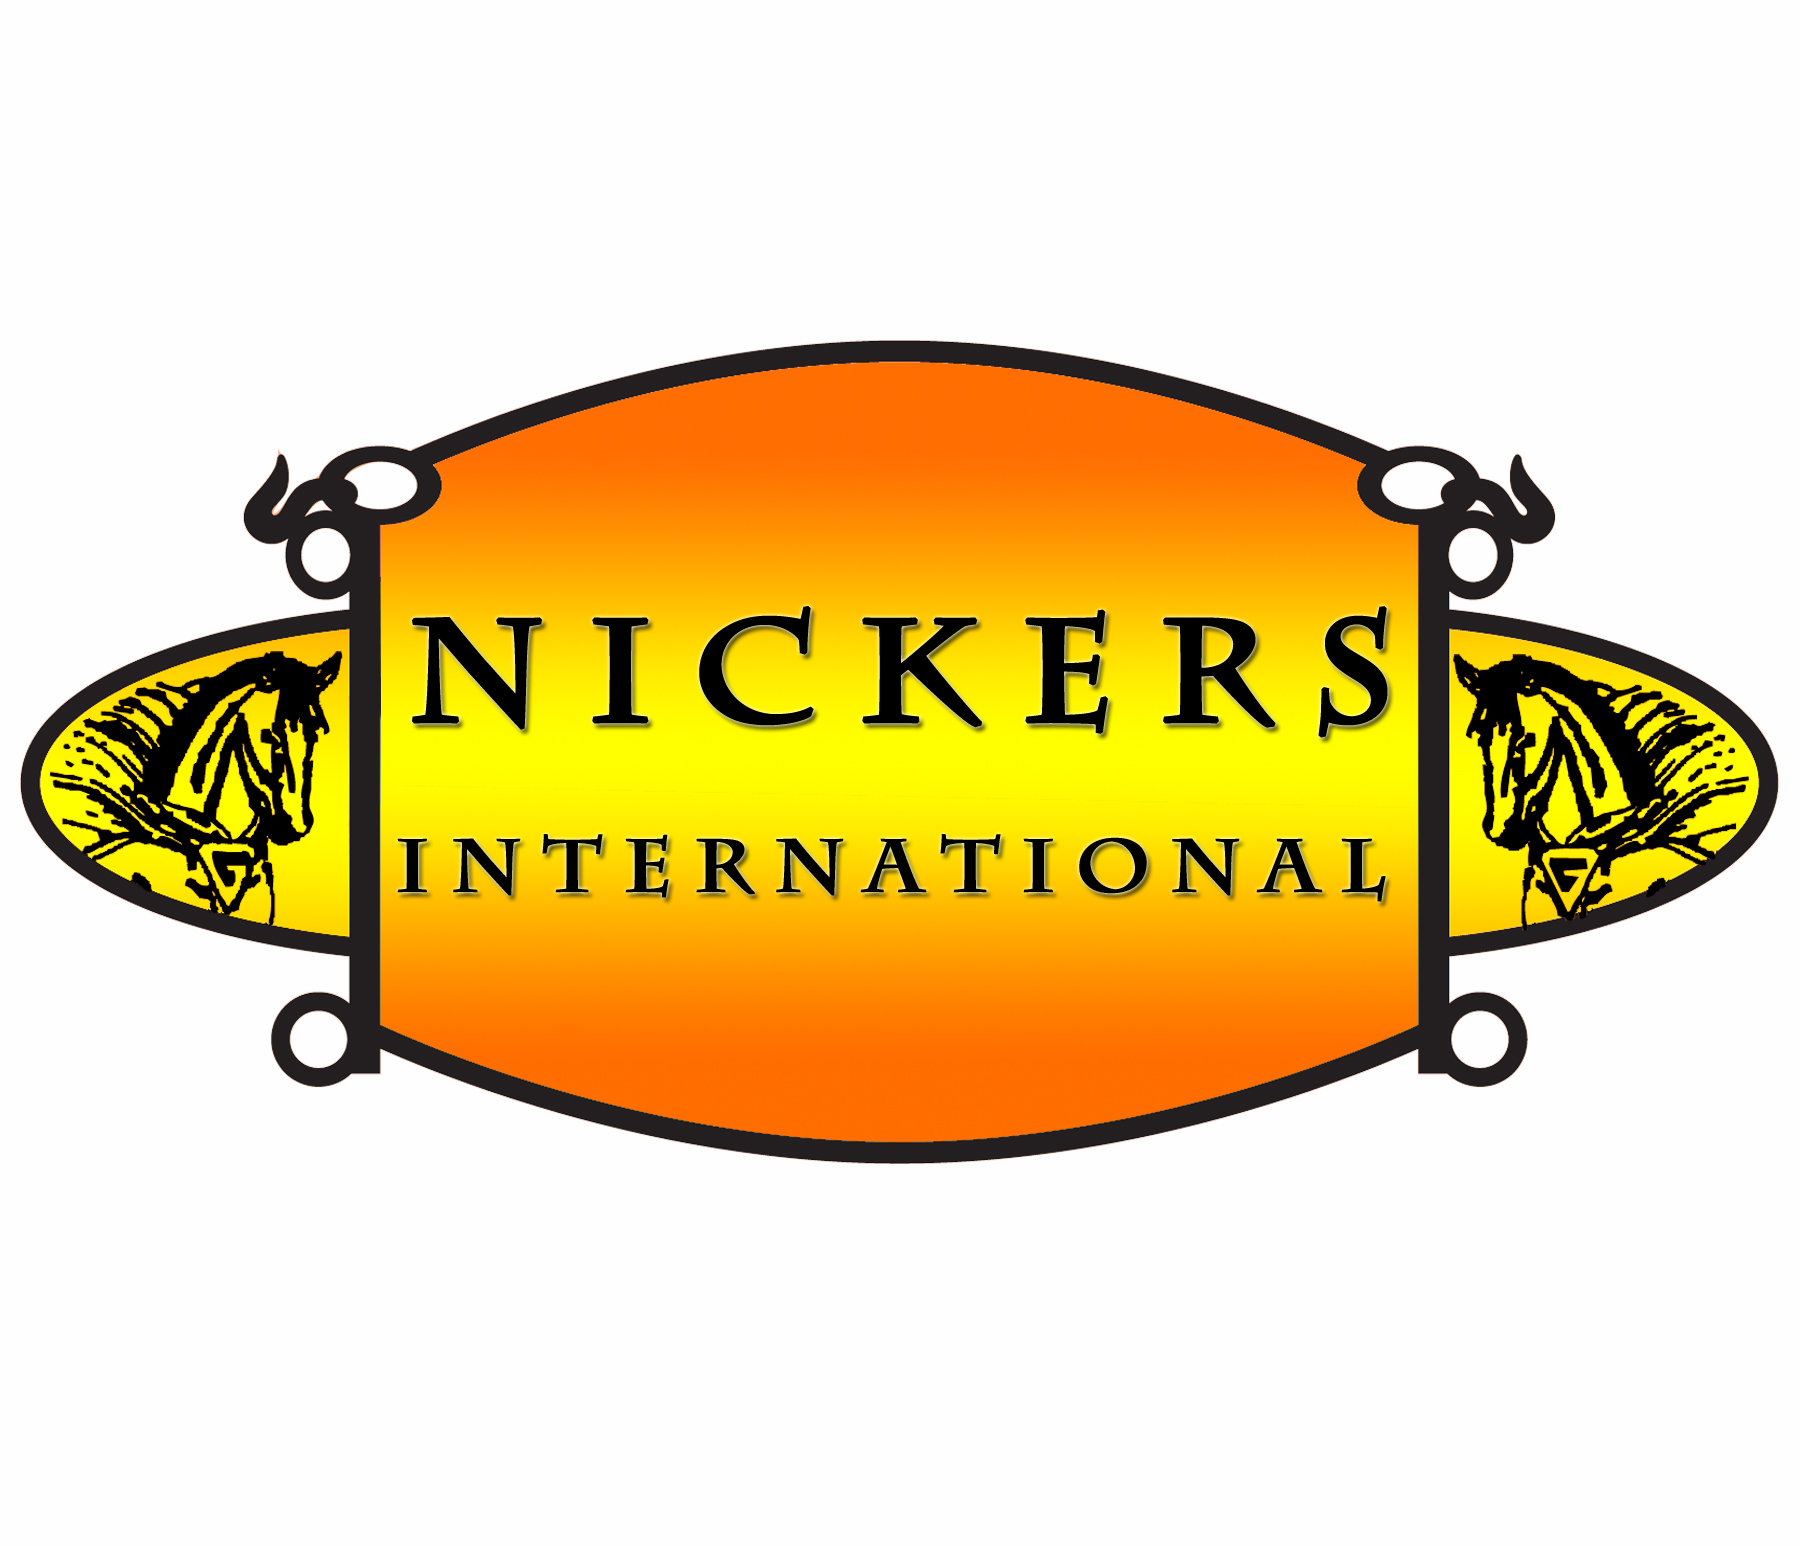 Nickers International